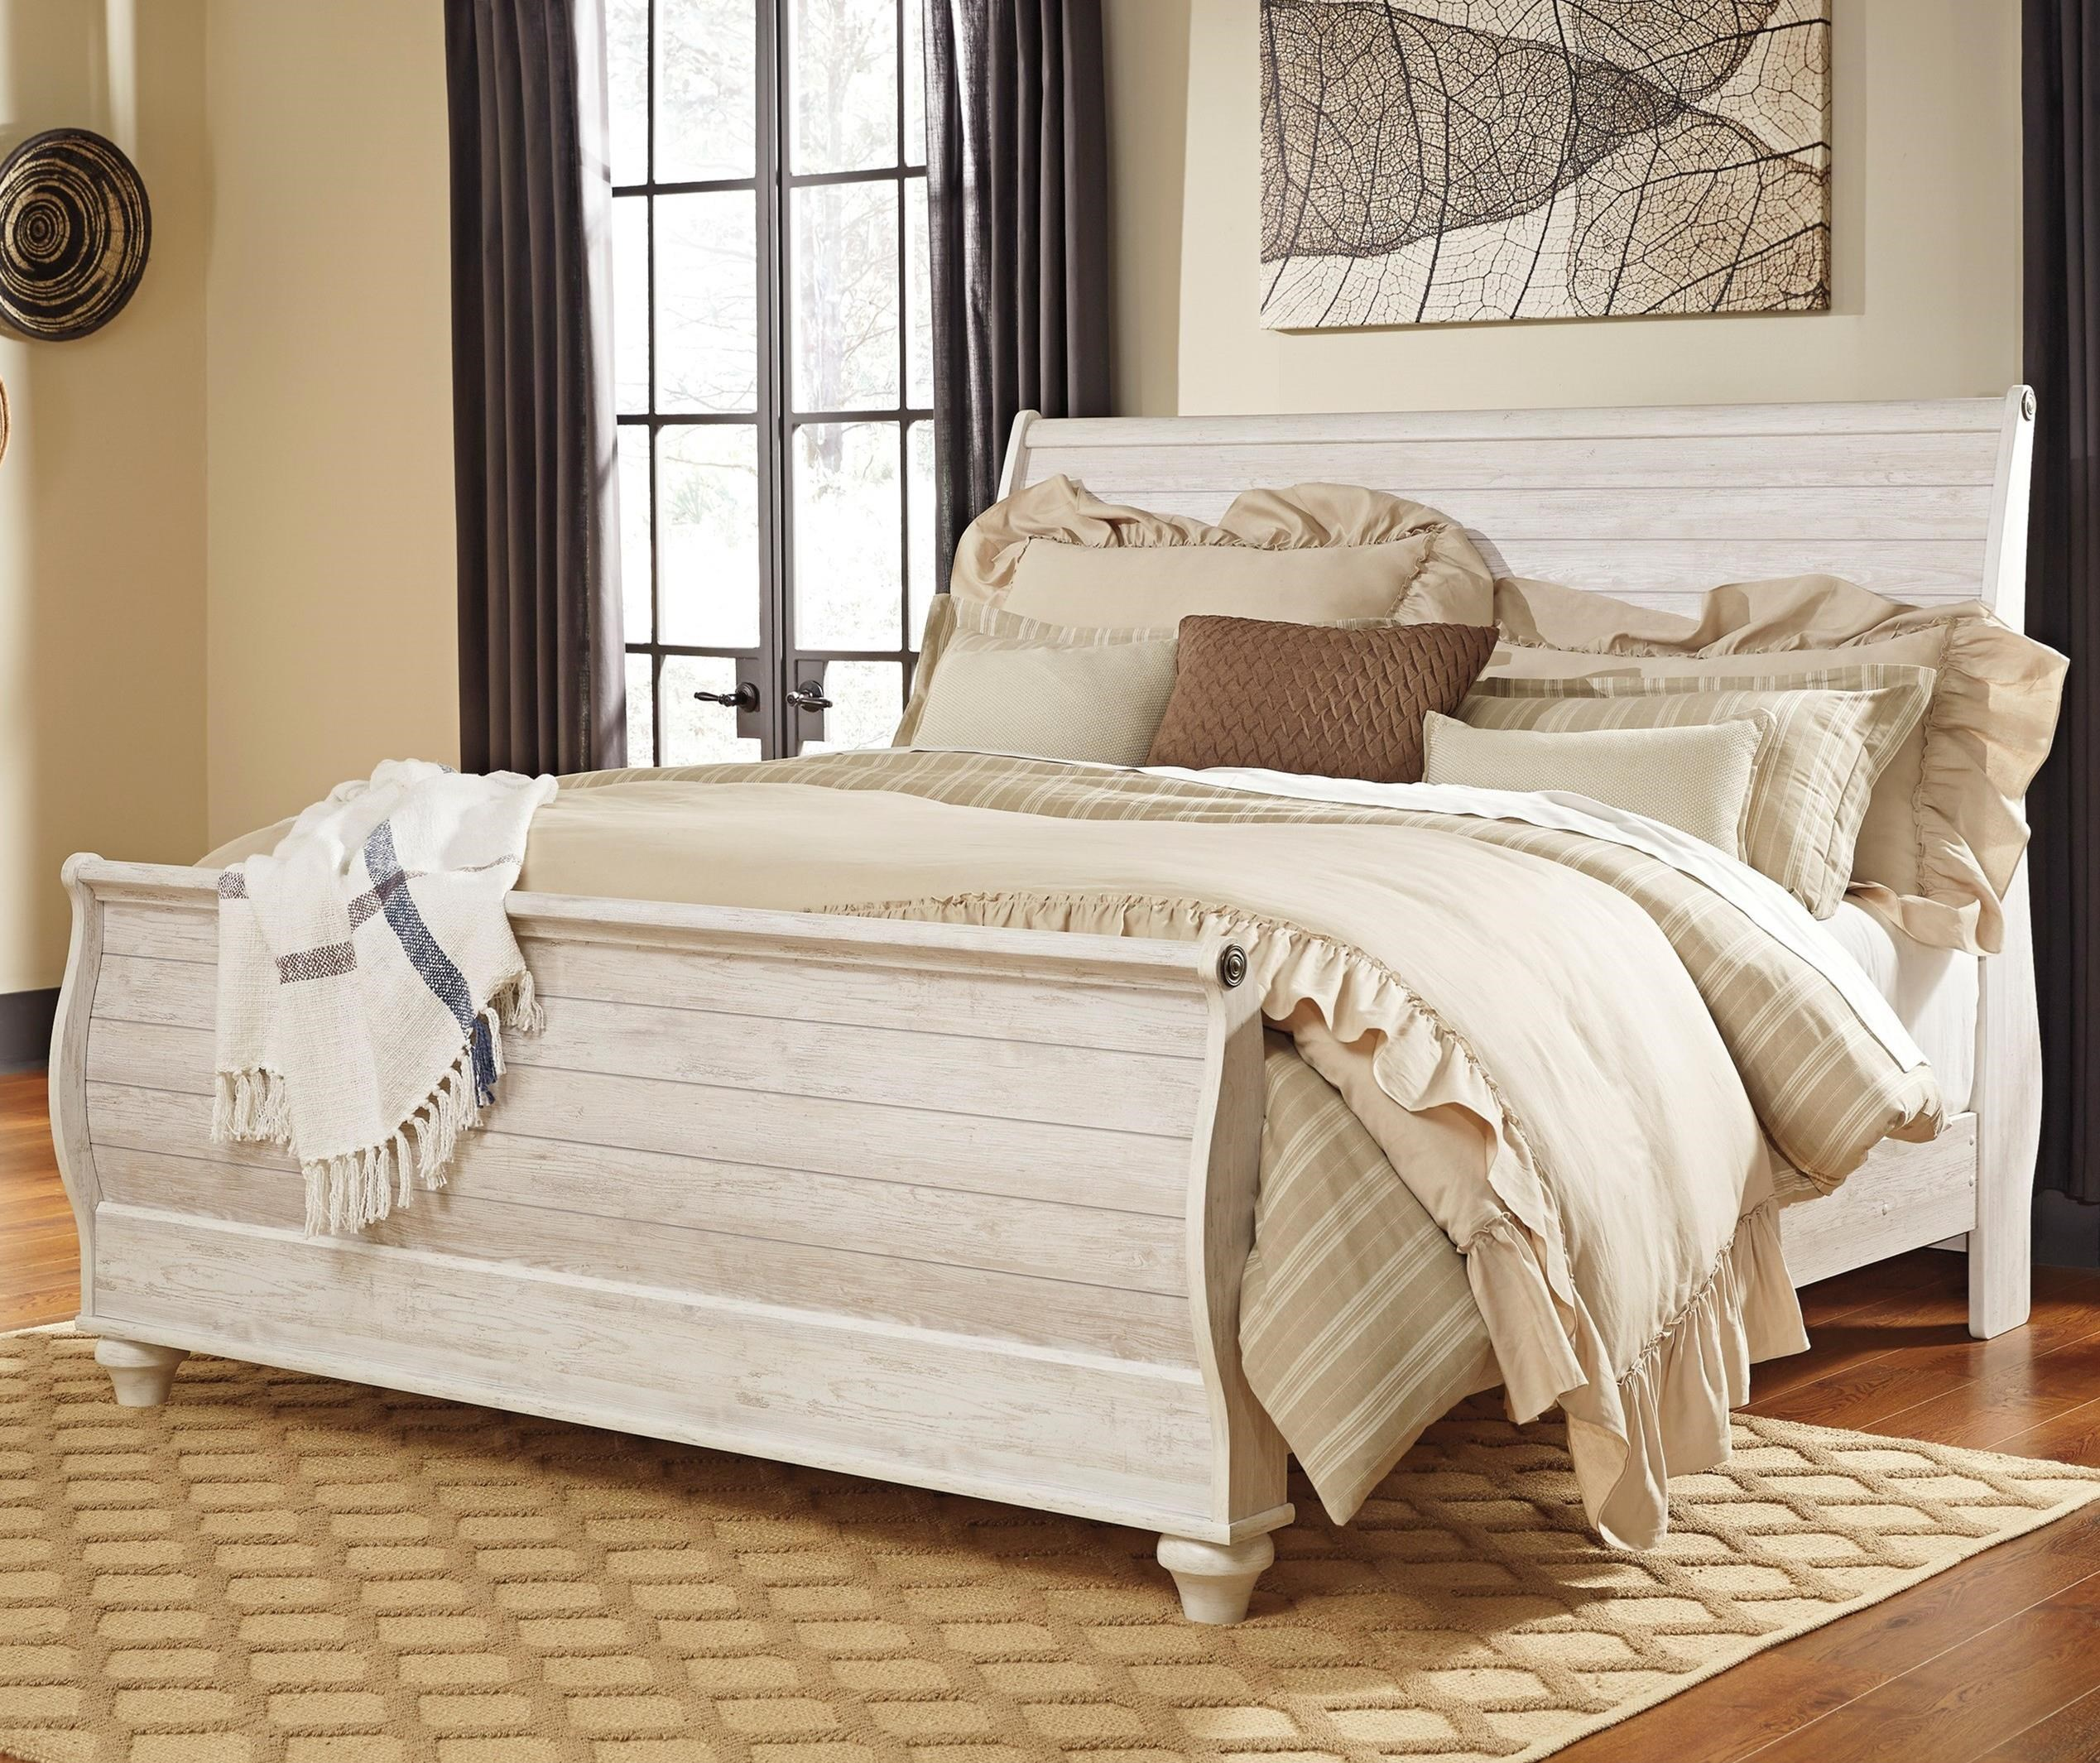 Signature Design by Ashley Willowton King Sleigh Bed - Item Number: B267-78+76+97